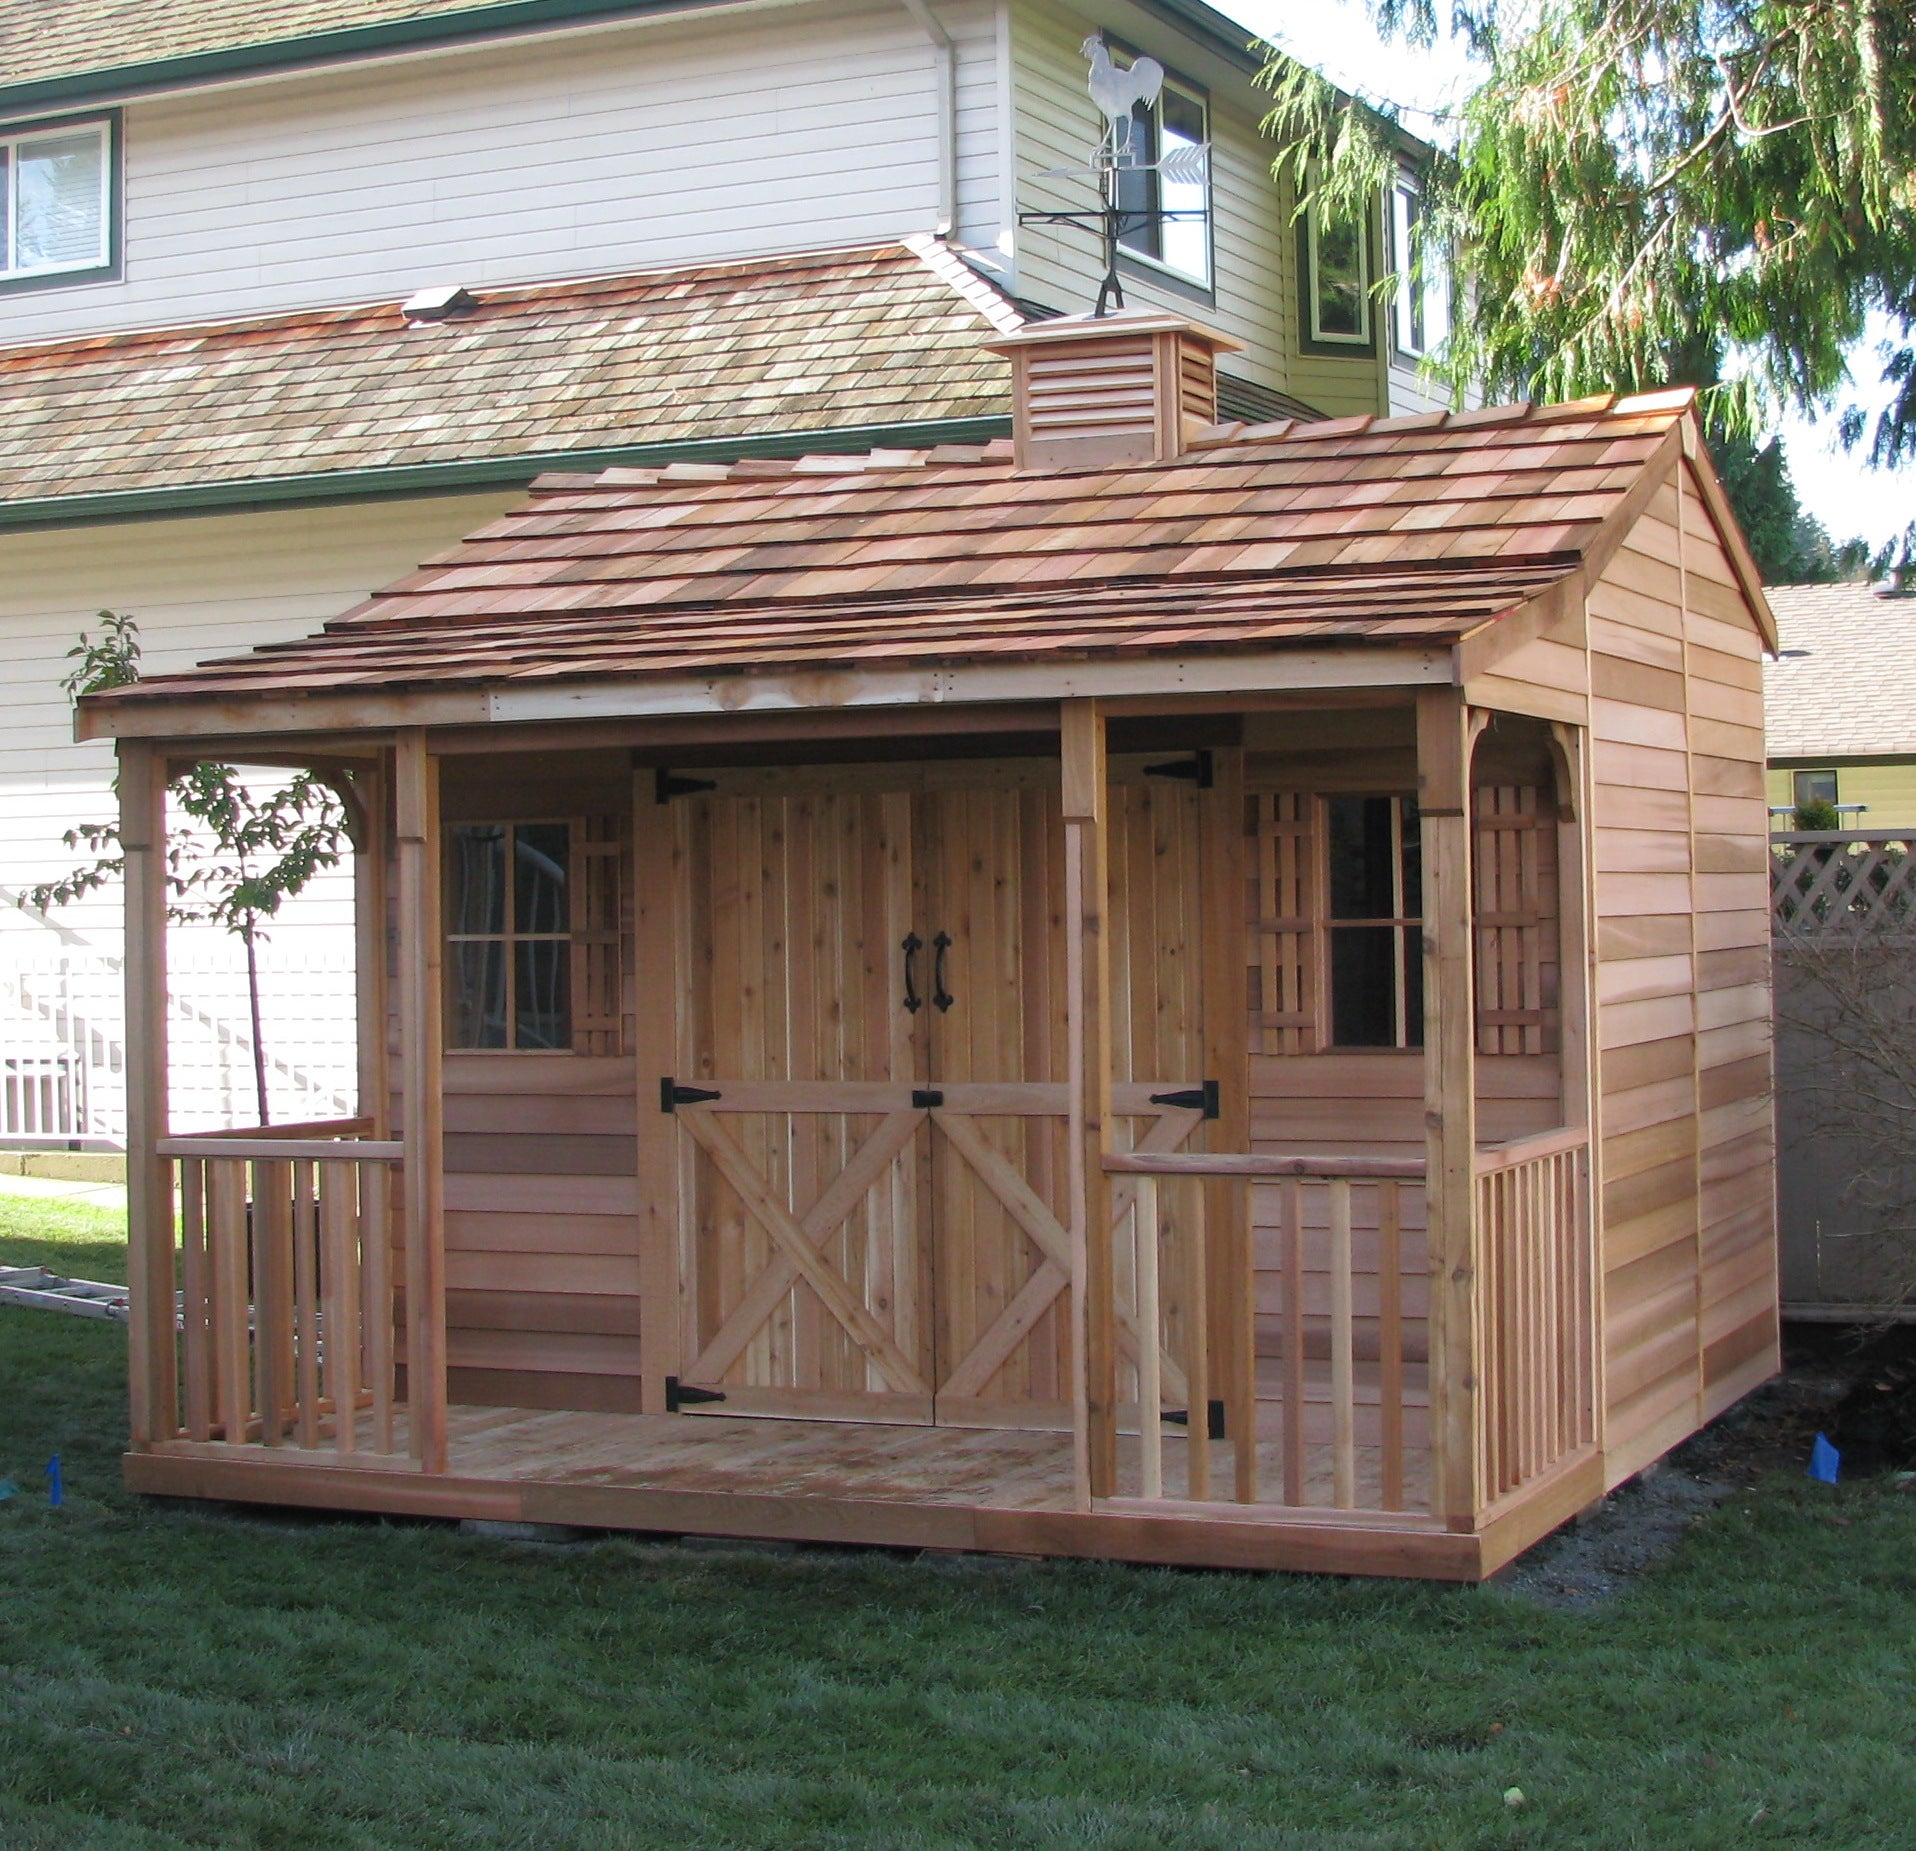 Ranchouse Backyard Sheds, Prefab Guest Cottage Kits For